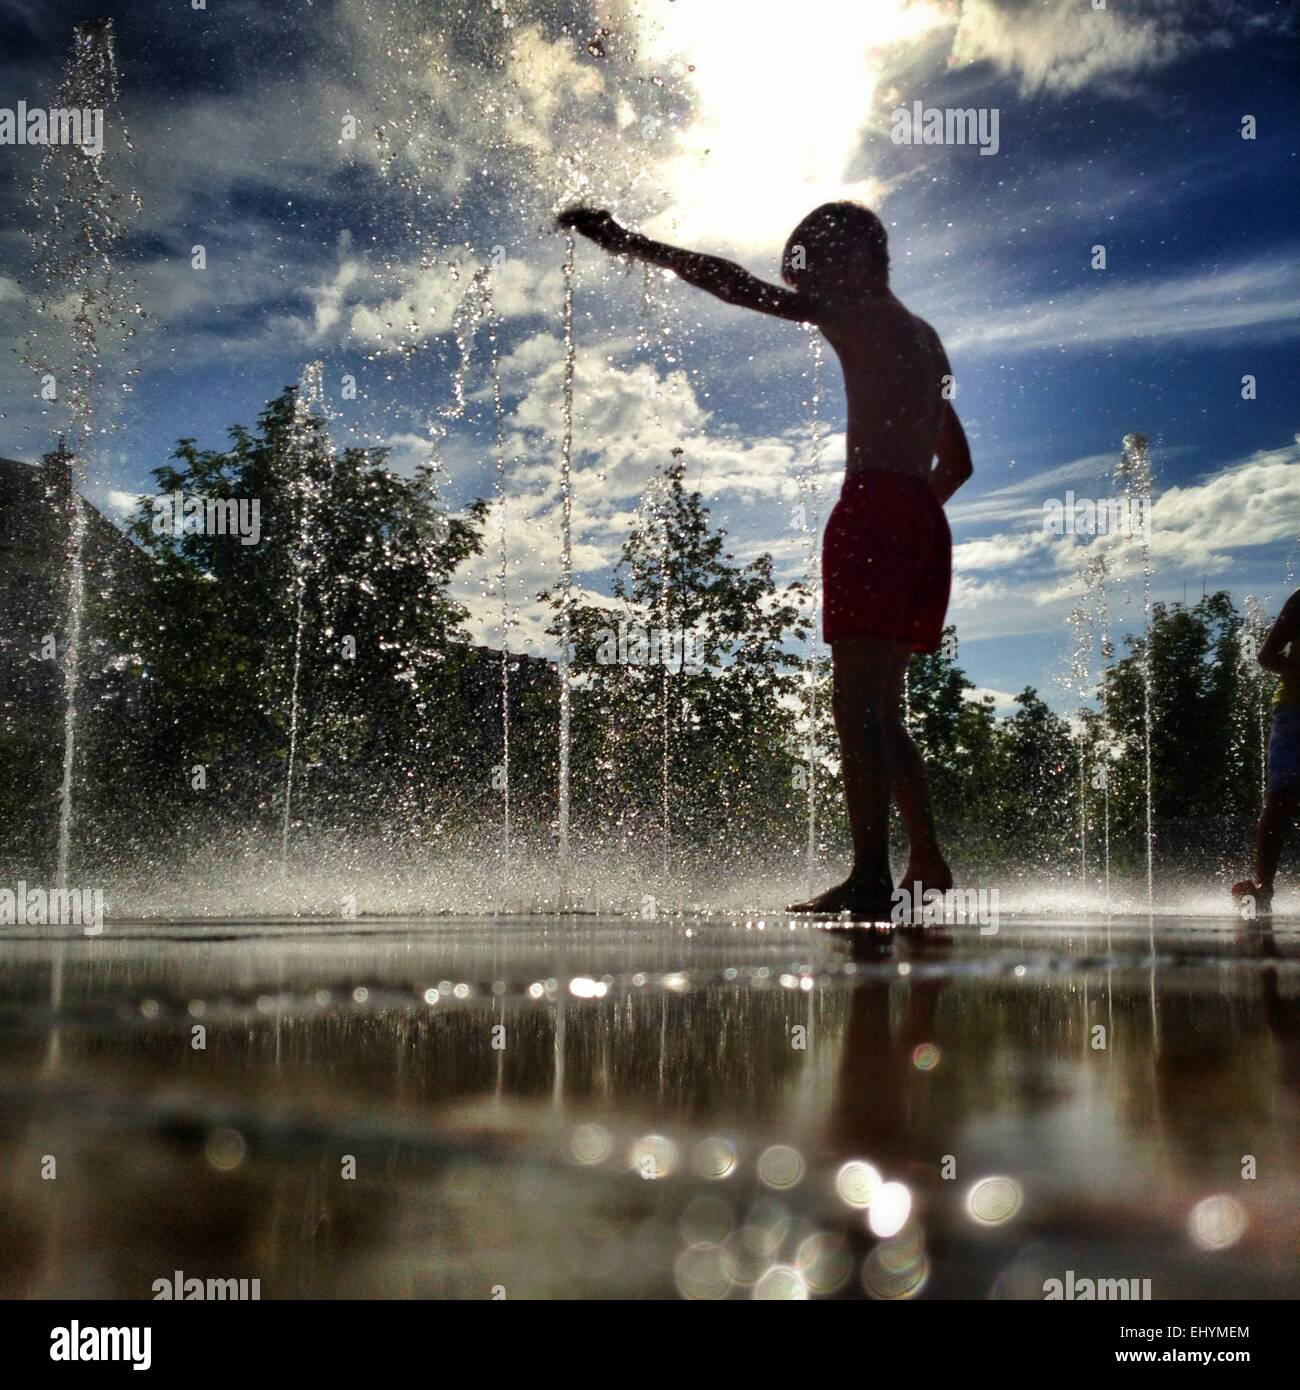 Silhouette Of A Boy Standing In Water Fountain Niort France